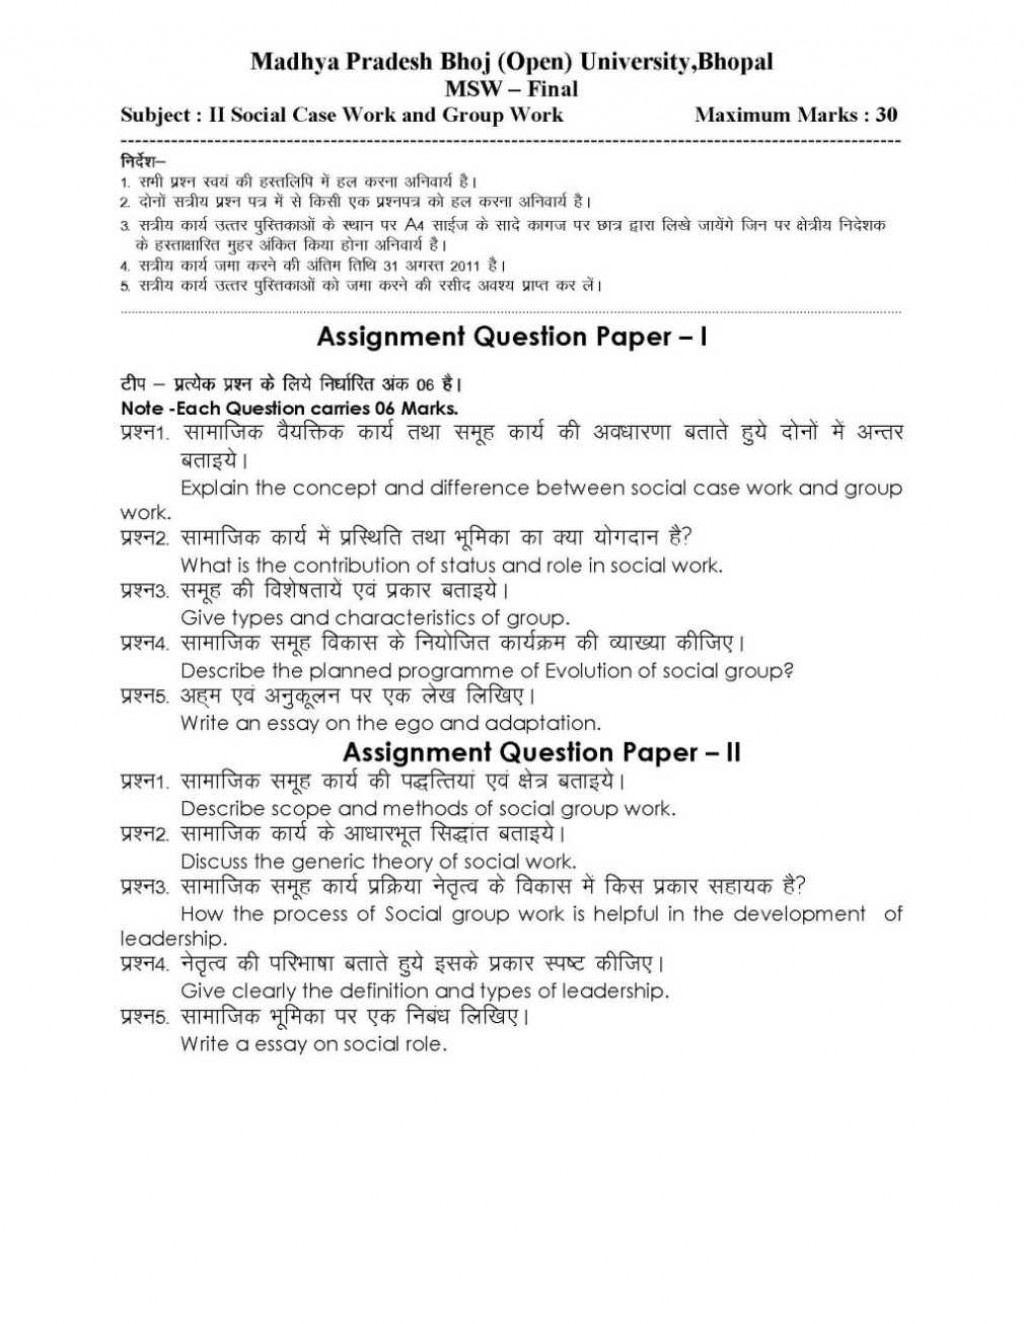 006 Bhoj University Bhopal Msw Essay Example What Makes Good Awesome A Leader Pdf Successful Large